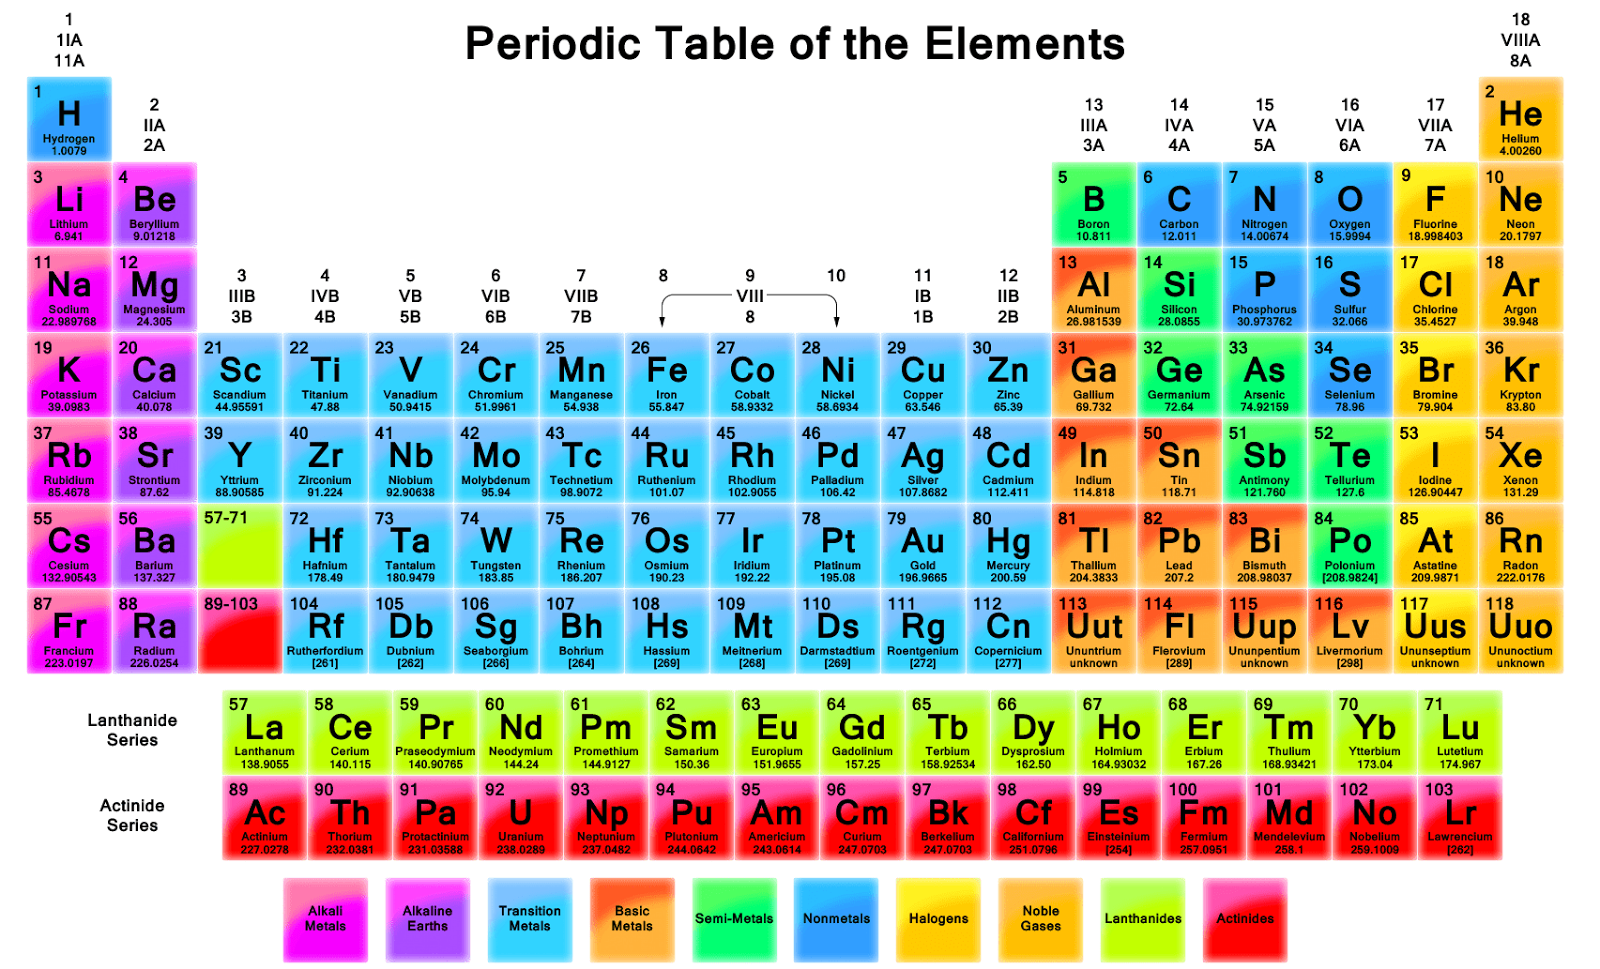 Periodic table mnemonics edu buzz the mnemonics are one of the easiest ways to learn something we can use mnemonics in chemistry to remember the periodic table reactivity series etc urtaz Image collections